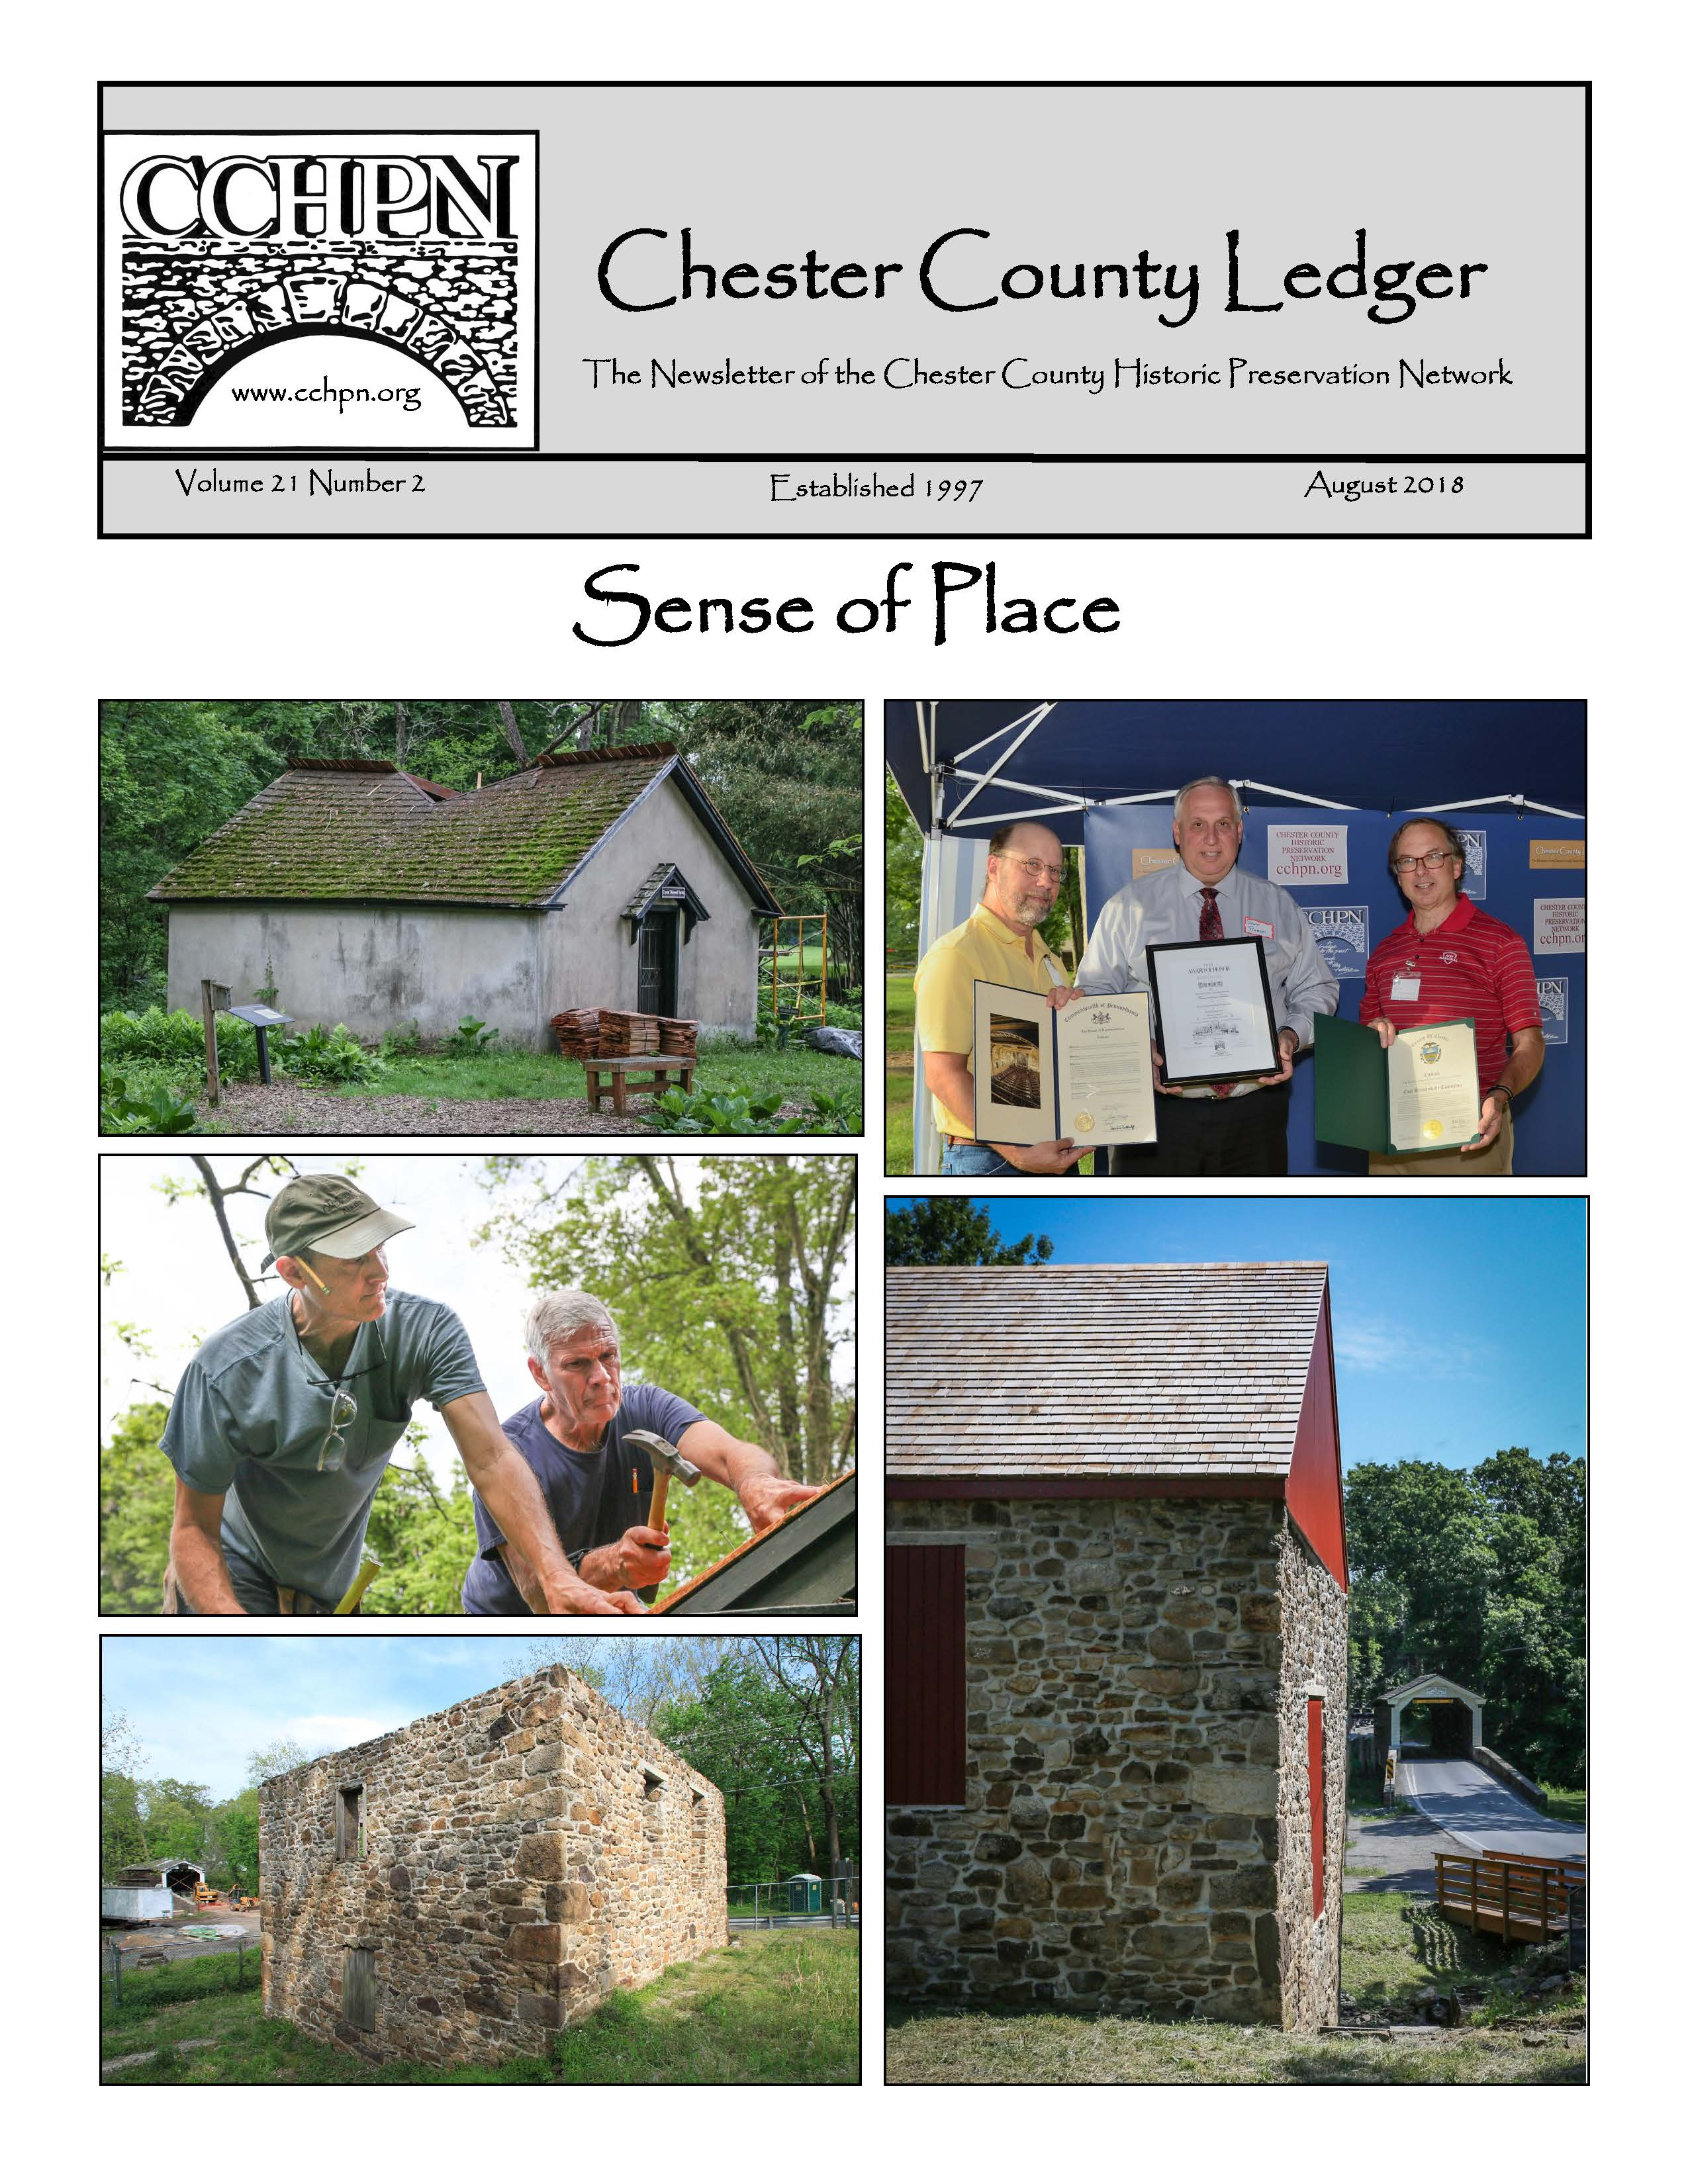 Chester County Ledger August 2018: Volume 21, Number 2